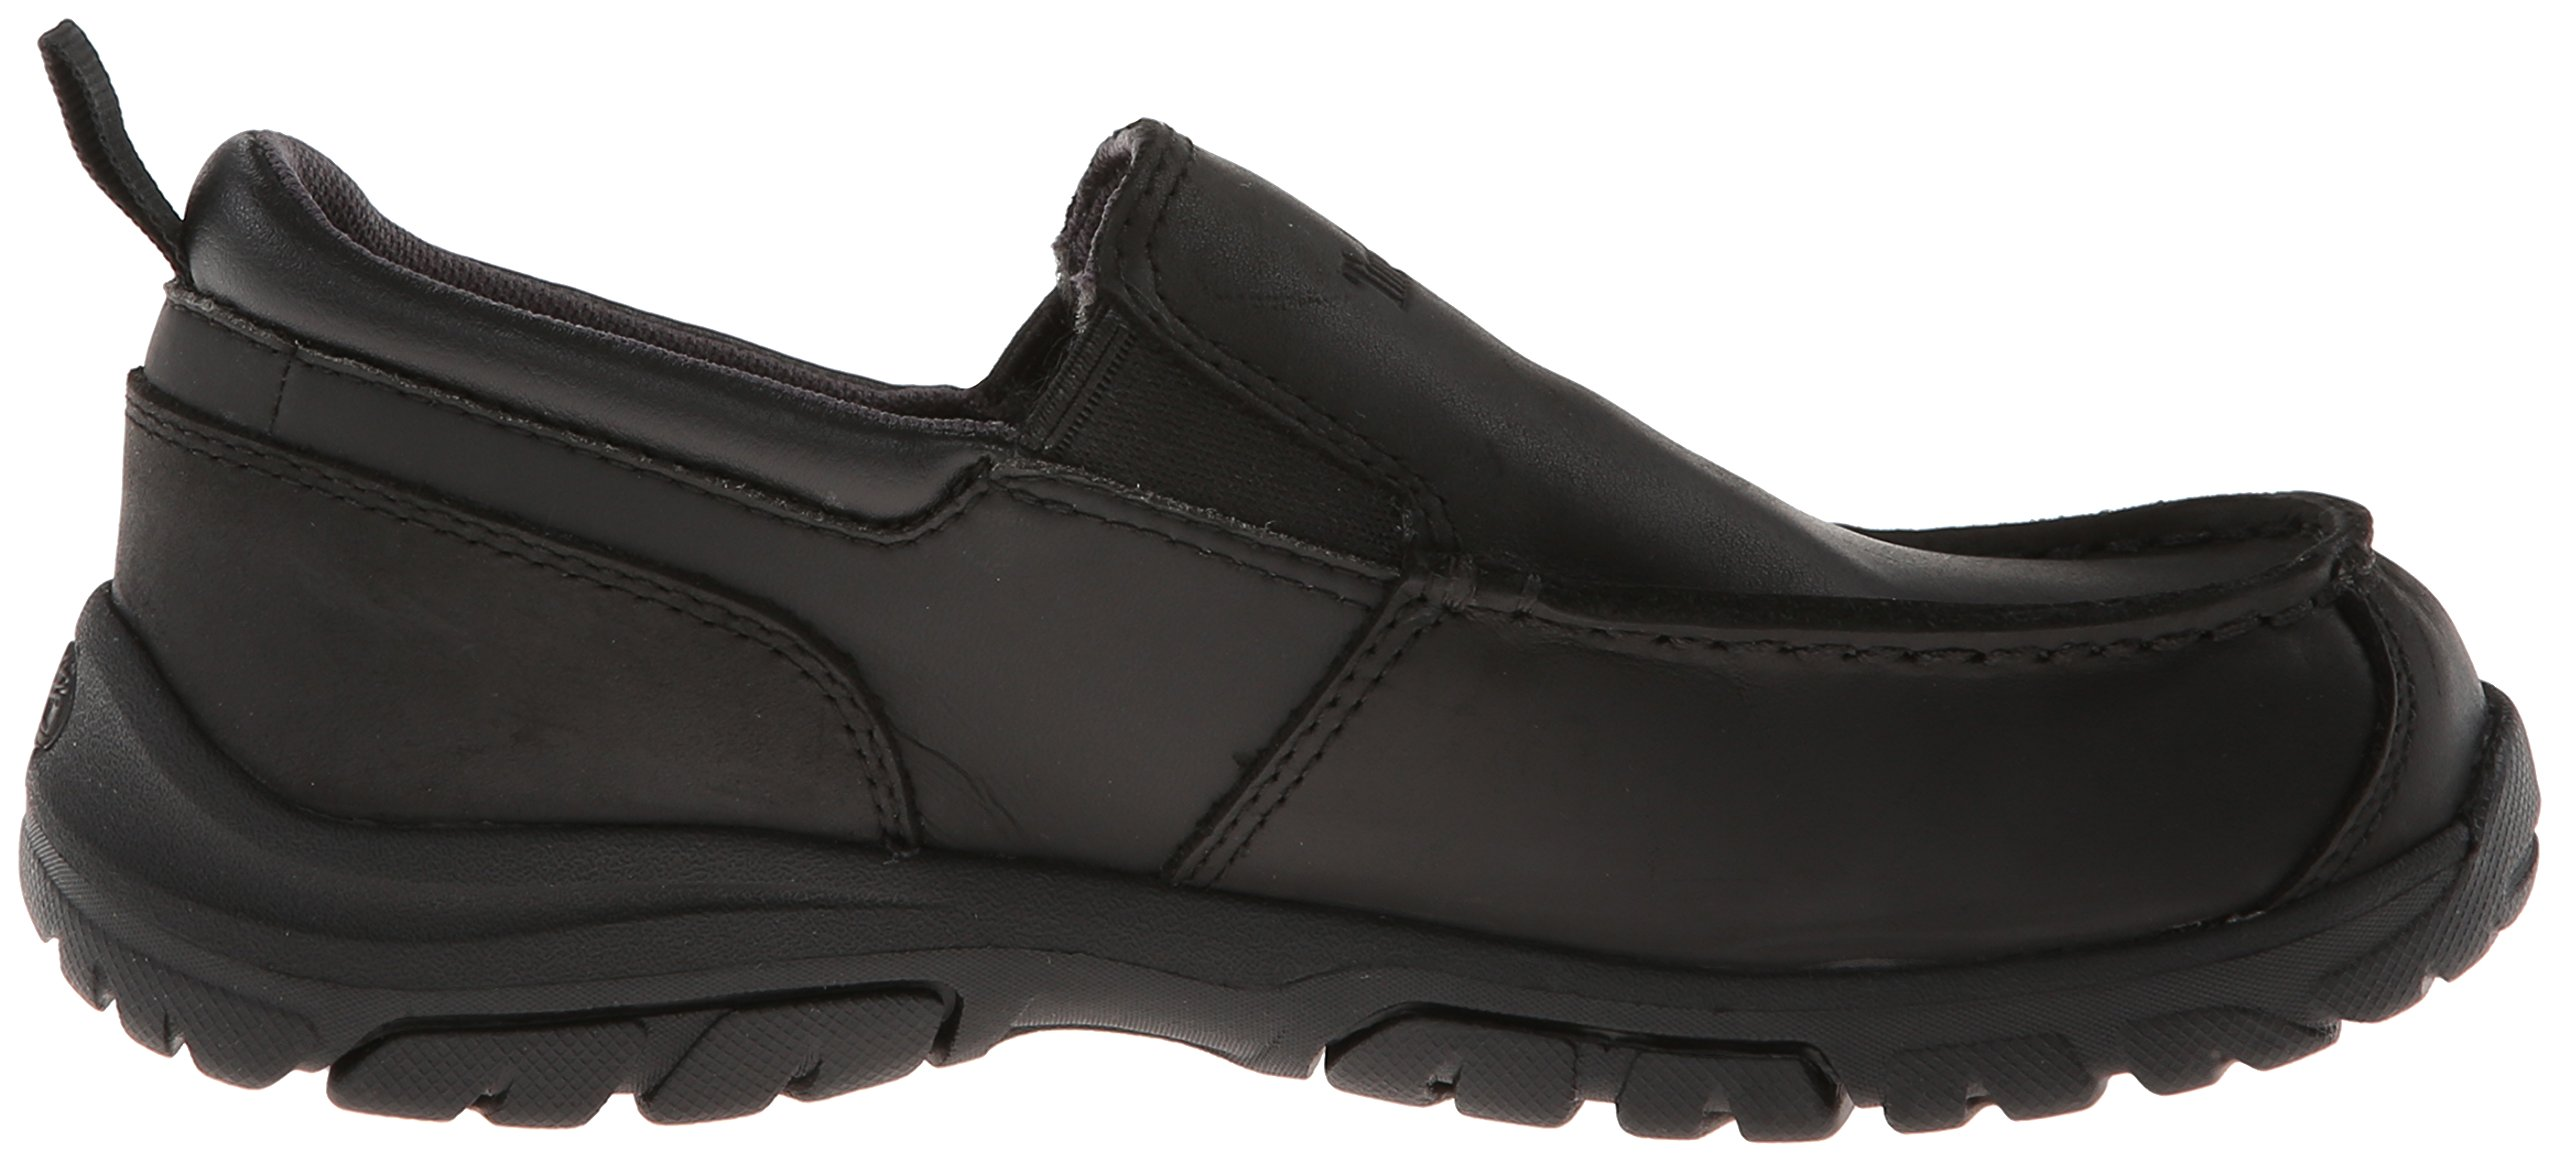 Timberland Discovery Pass Moc Toe Moc Toe Slip-On (Toddler/Little Kid/Big Kid),Black,9.5 M US Toddler by Timberland (Image #7)